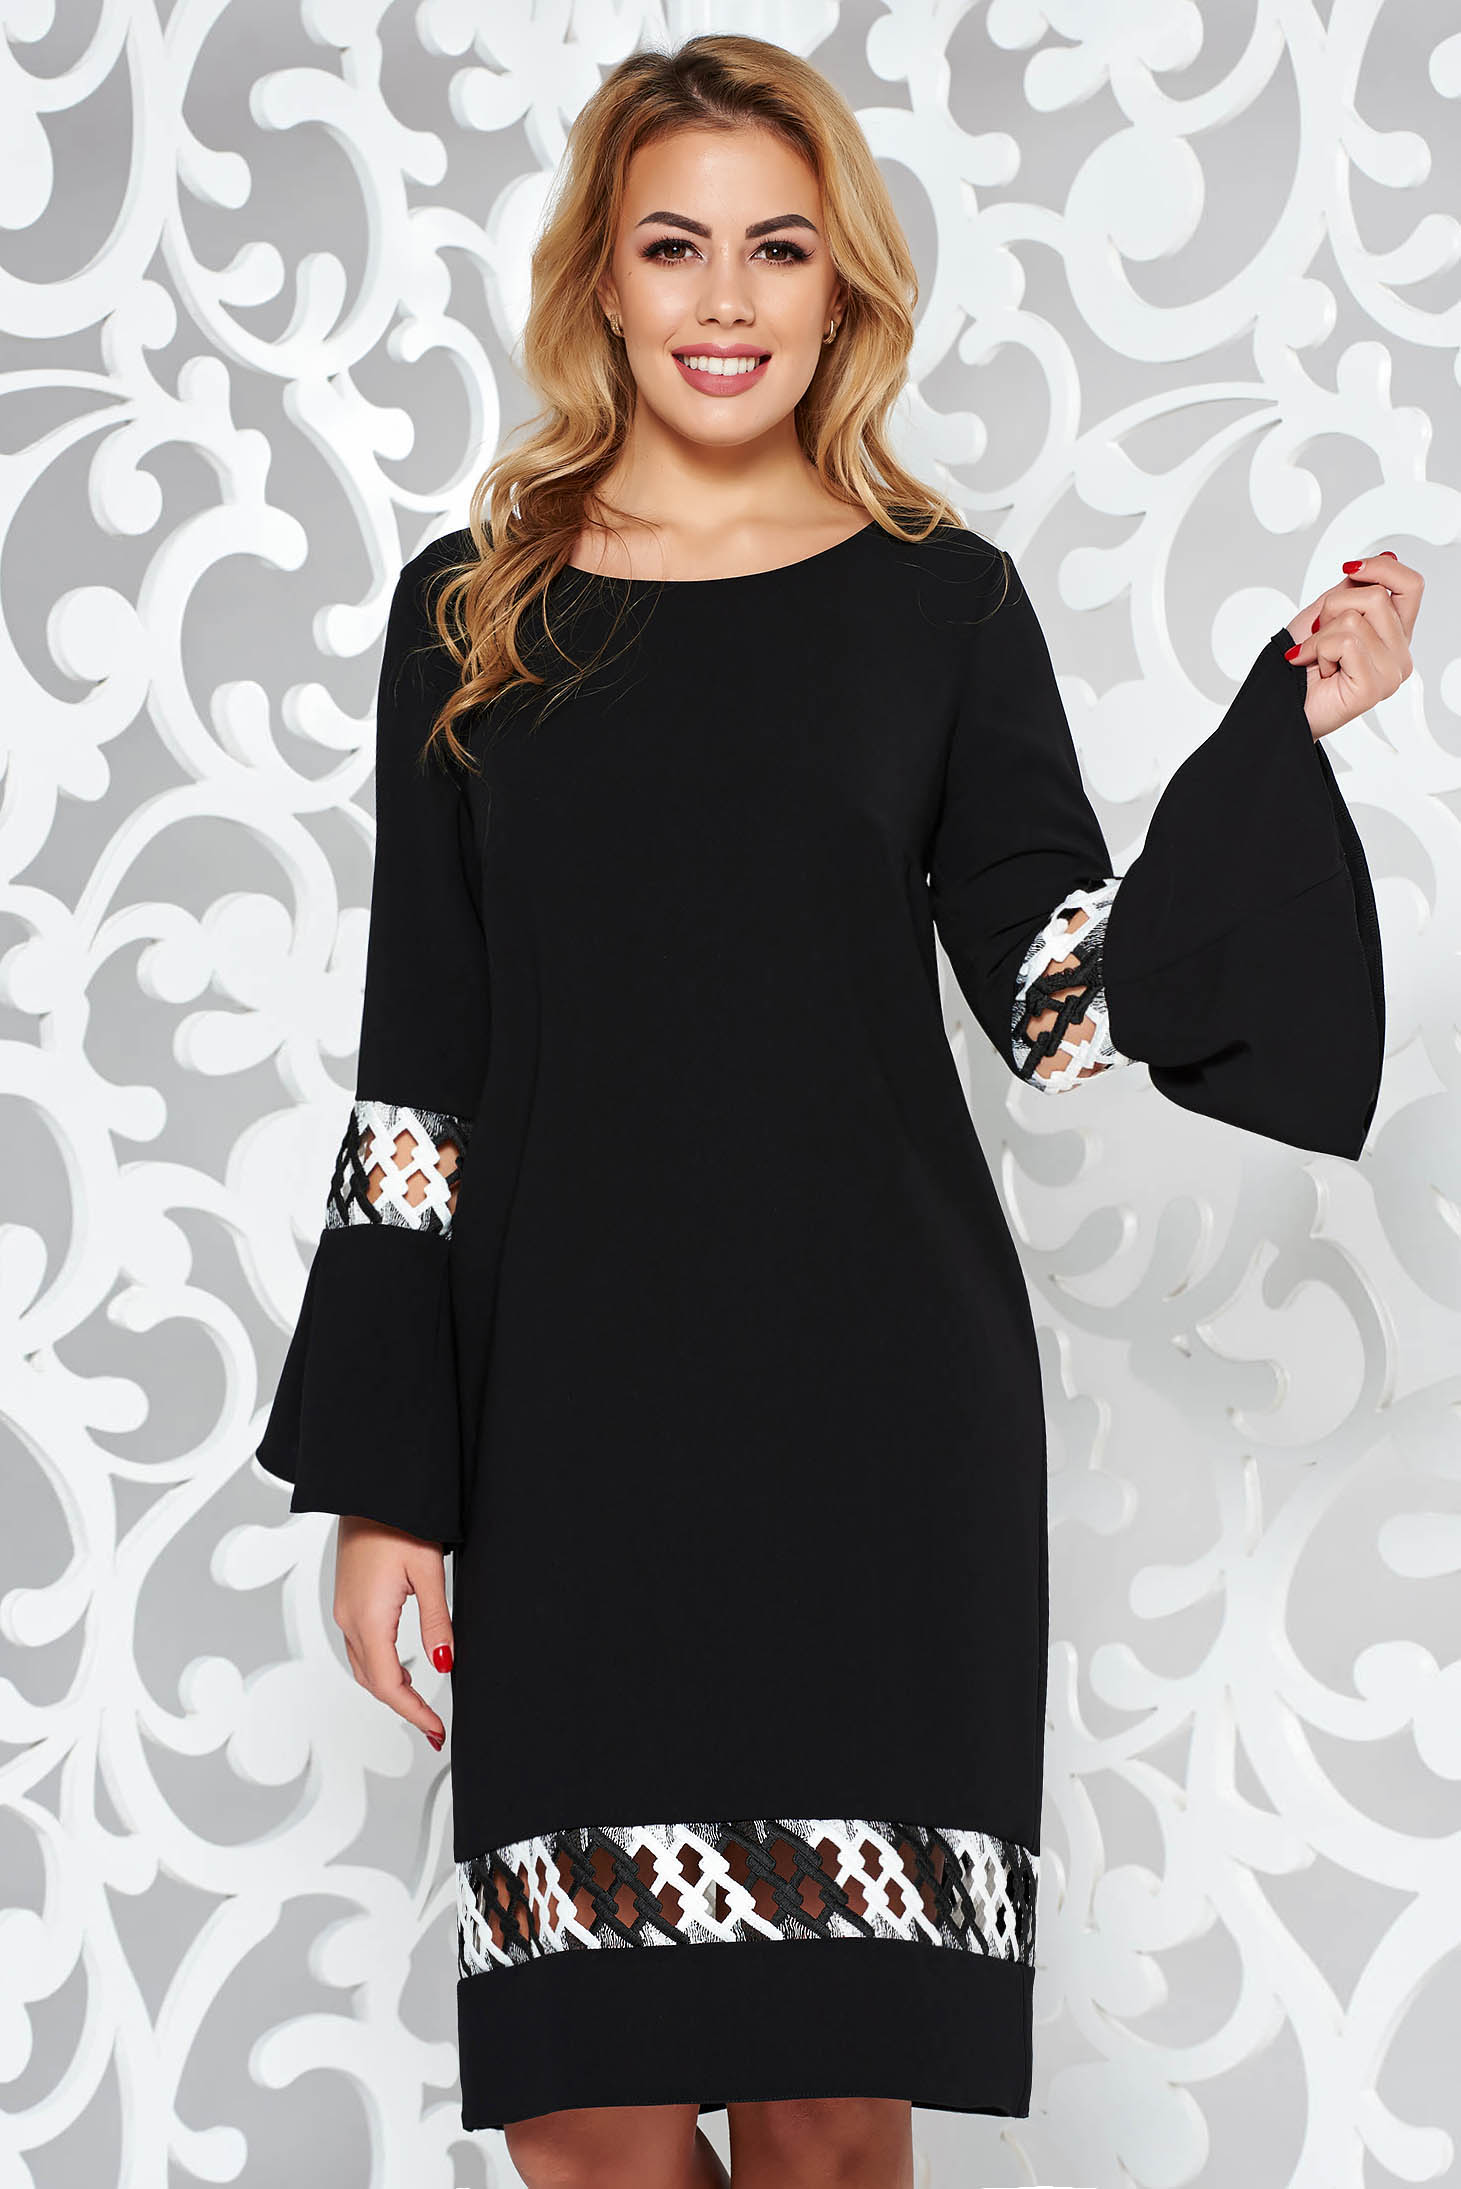 StarShinerS black elegant flared dress slightly elastic fabric with embroidery details